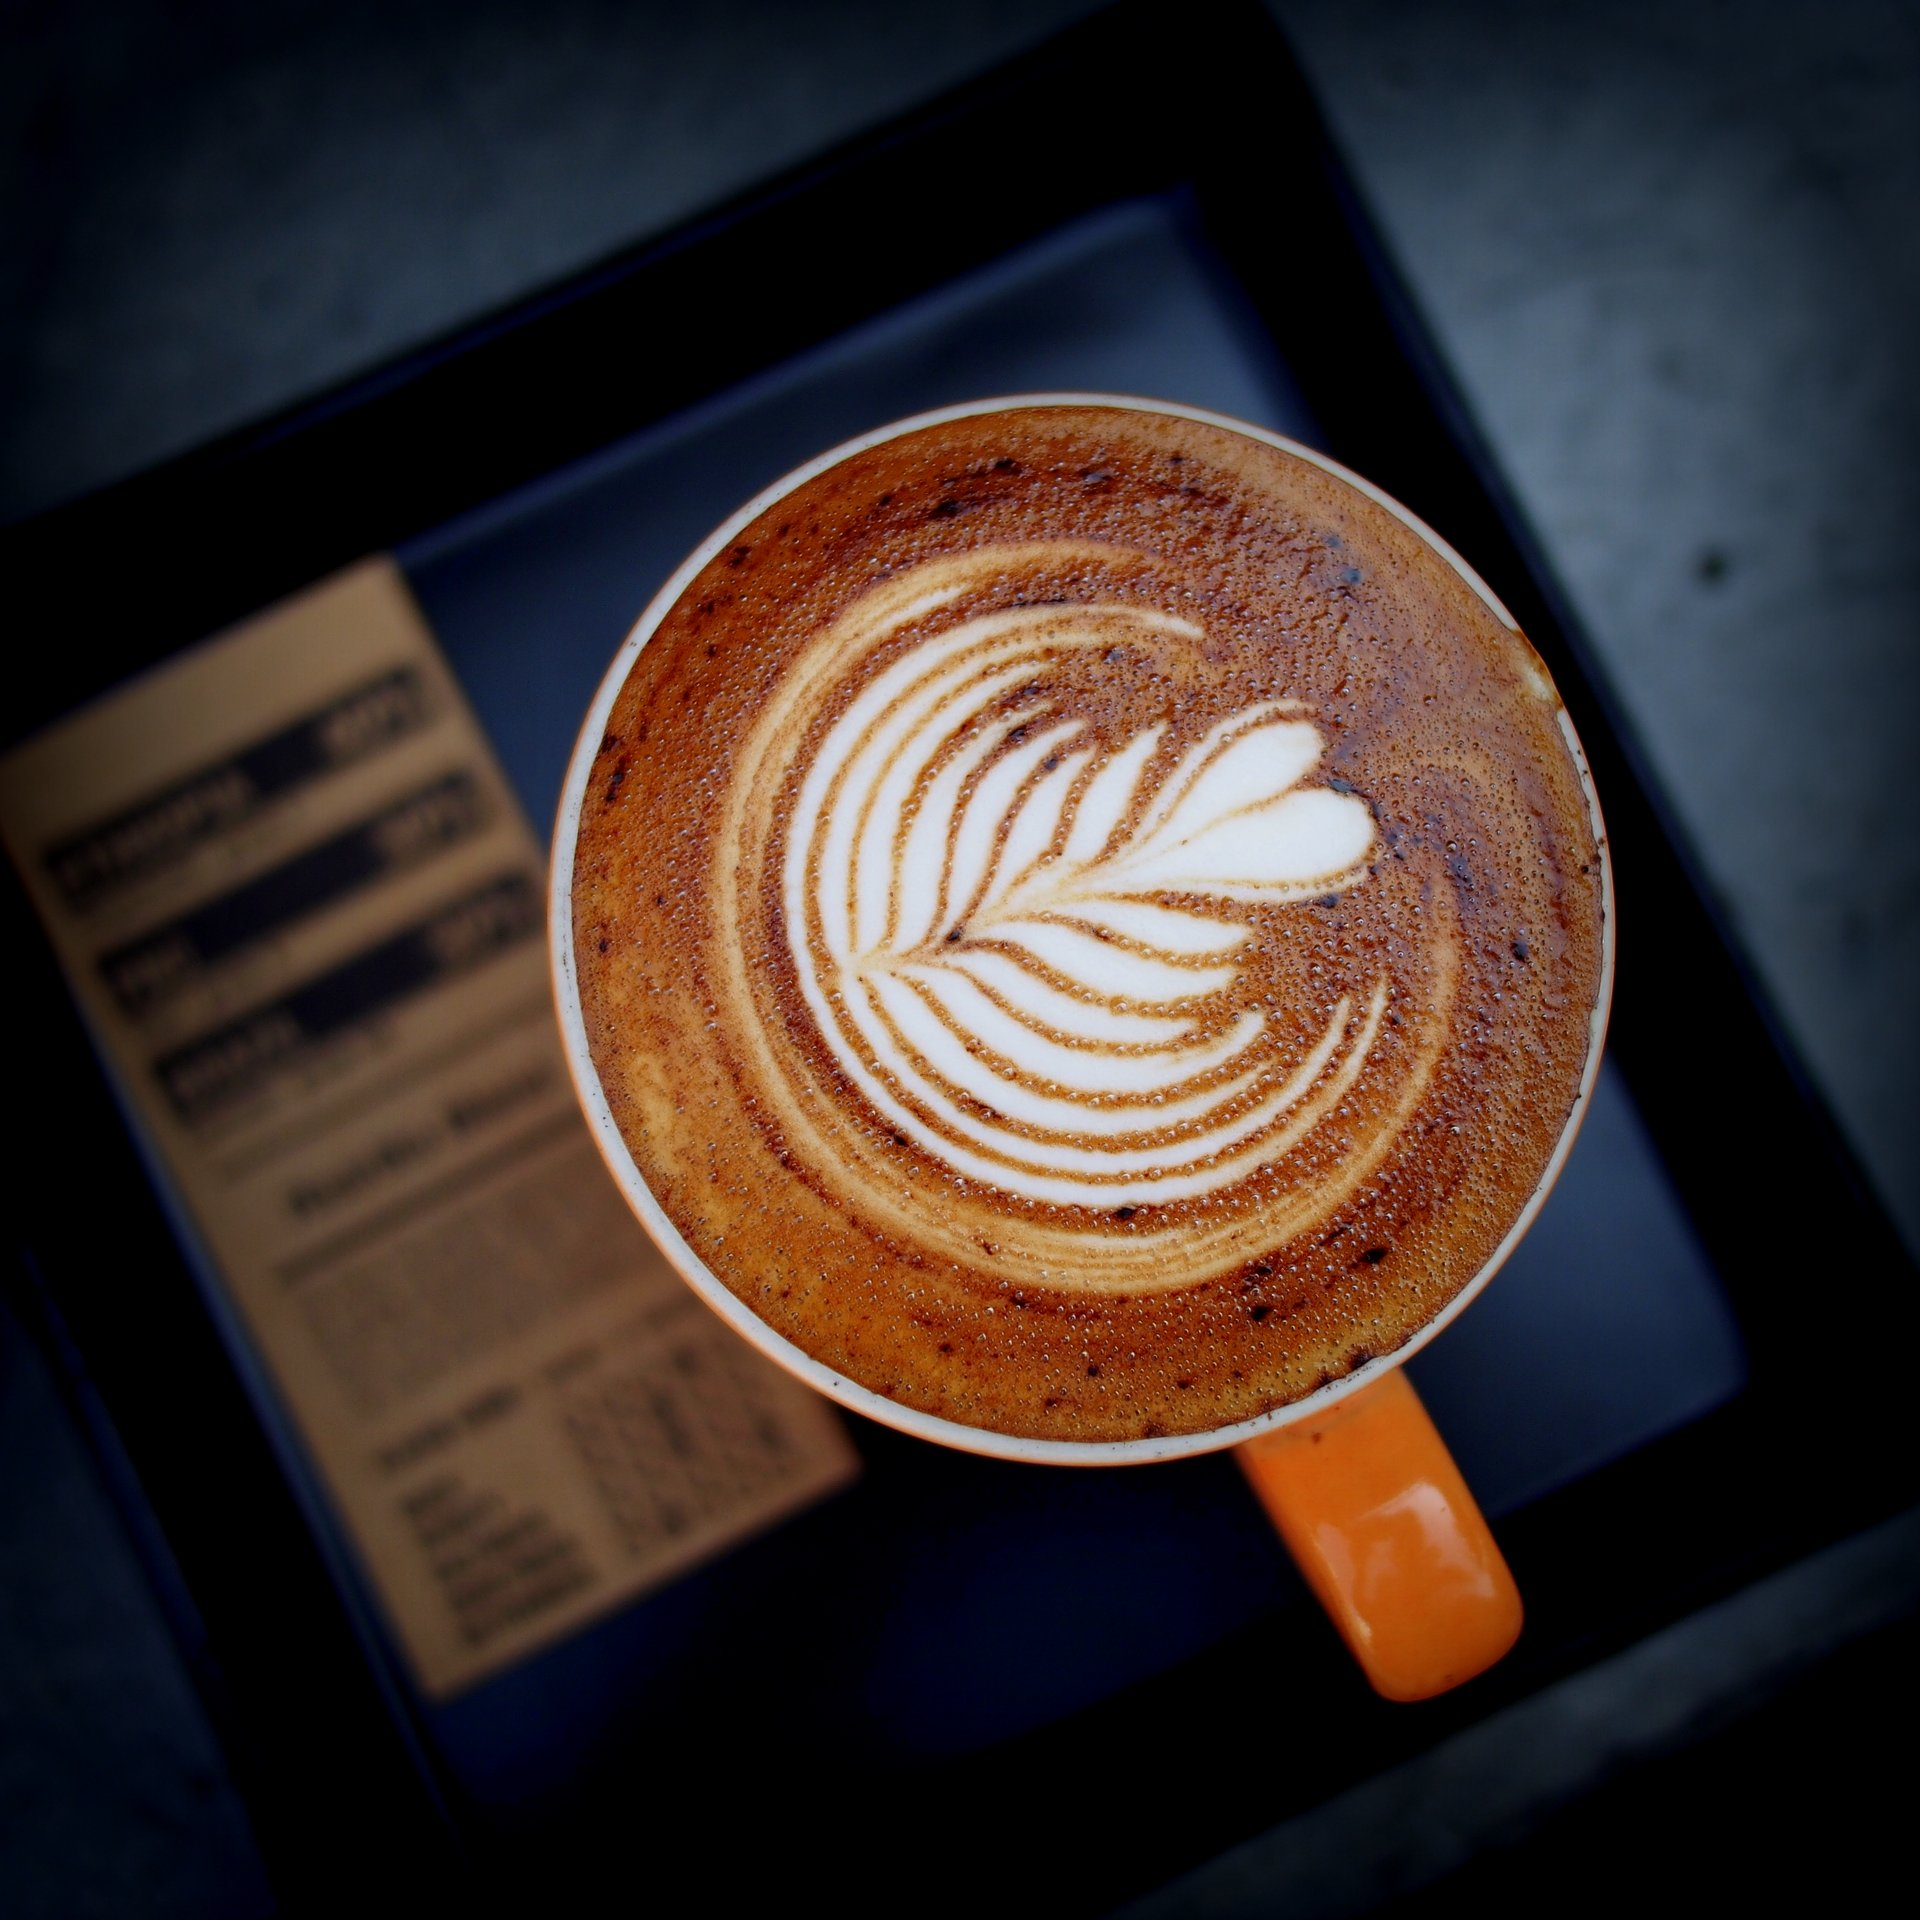 The data refers to coffee bean consumption, but doesn't give the go ahead to sweet, rich coffees like lattes